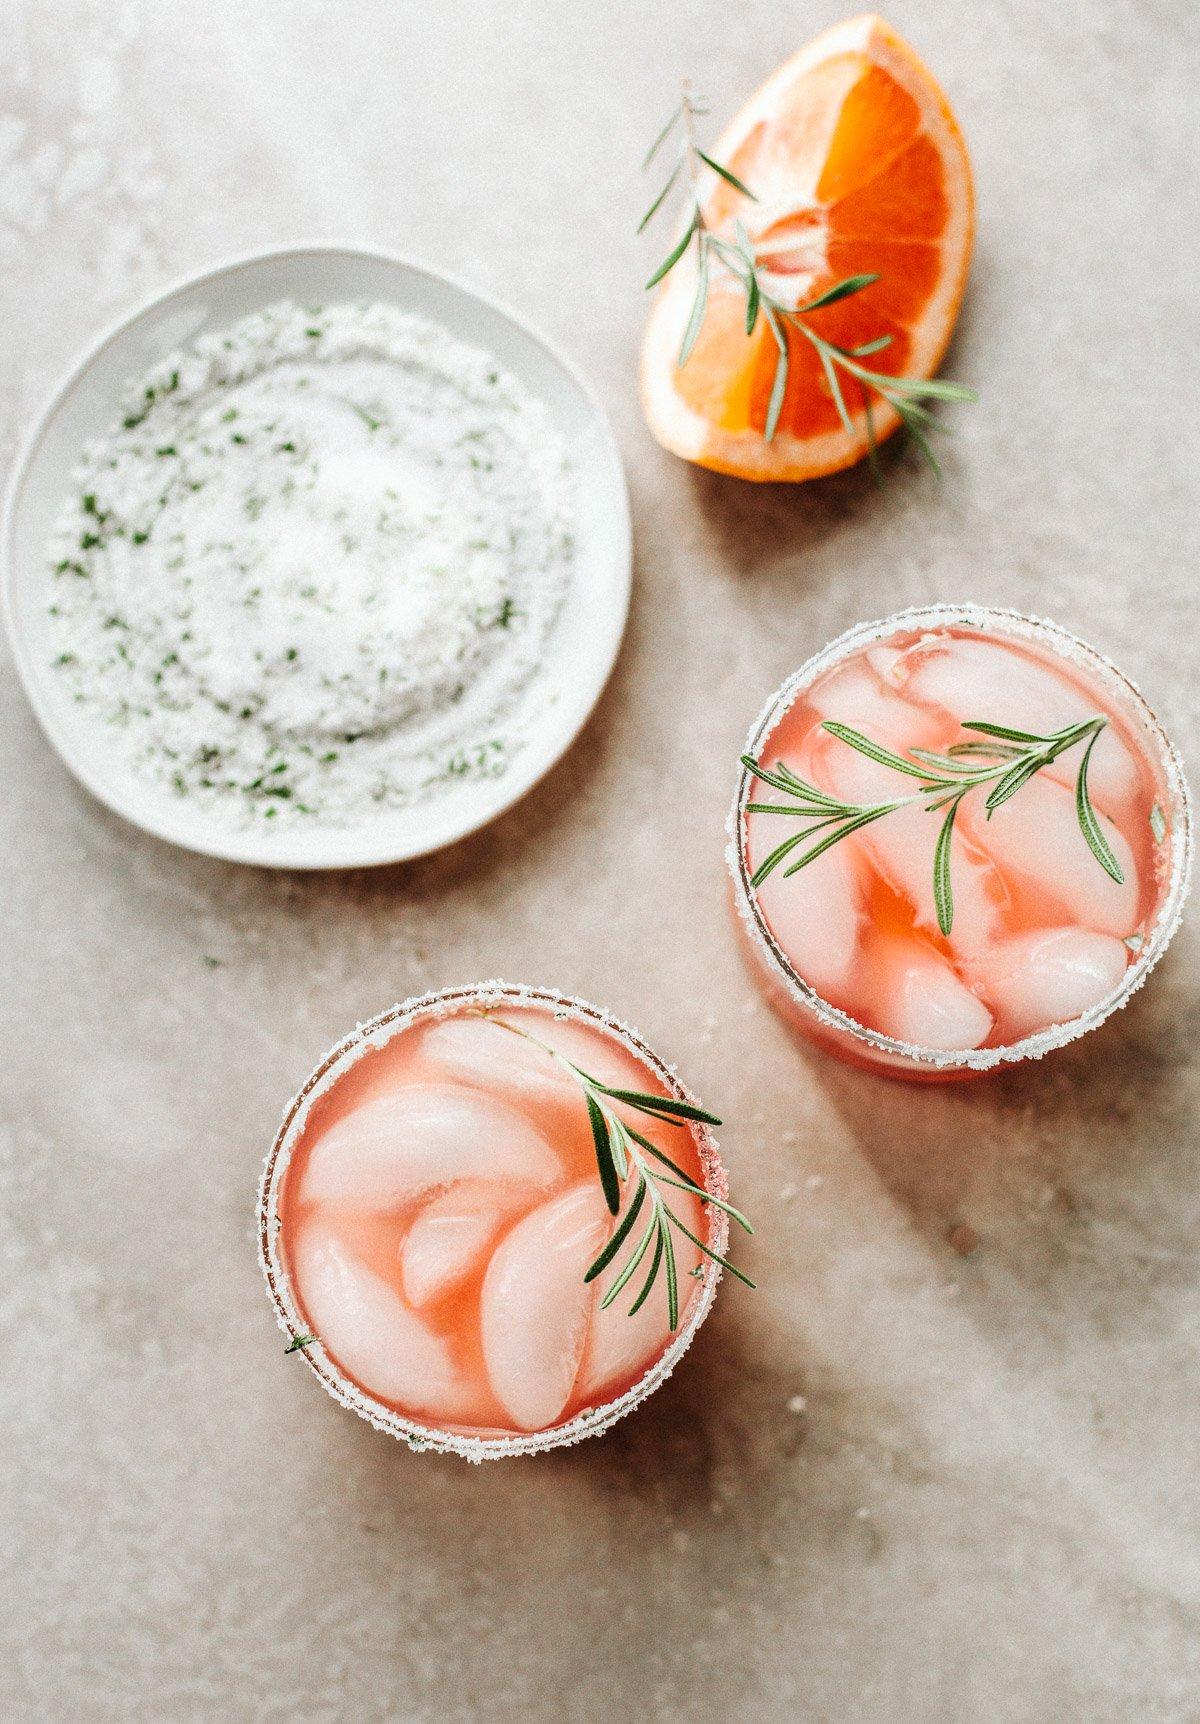 Italian Greyhound Cocktail with Rosemary Sugar